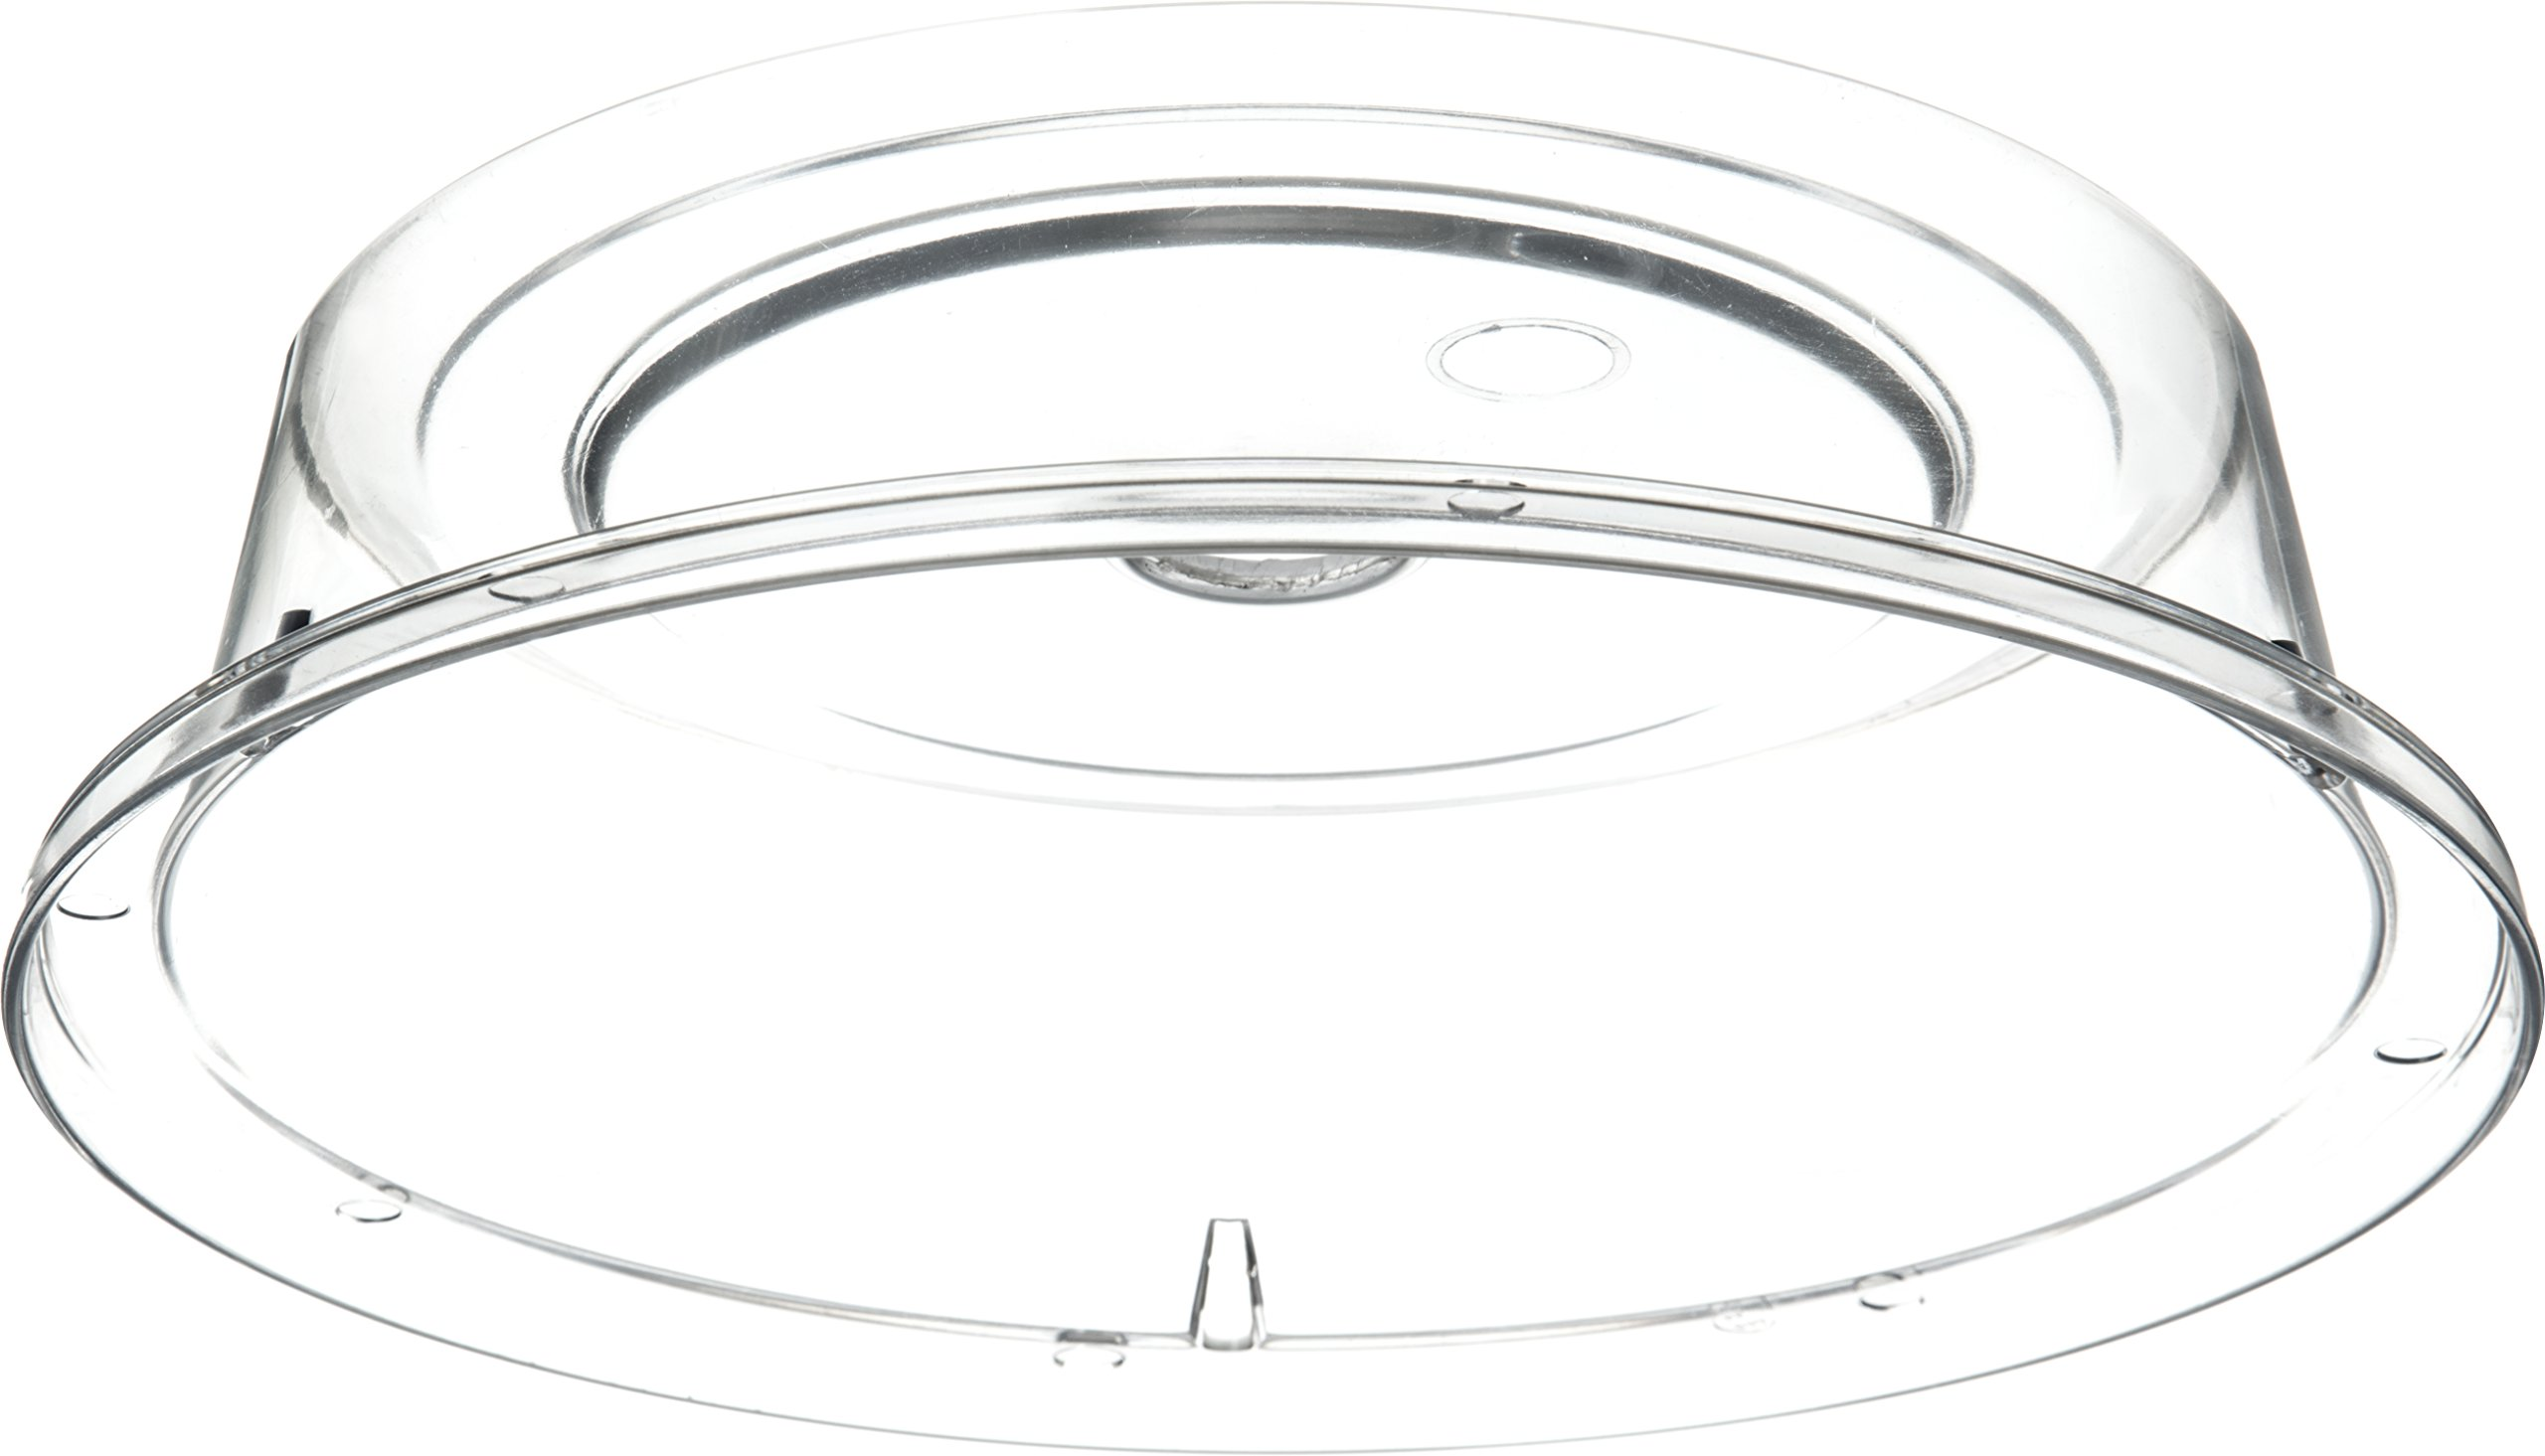 Carlisle 190007 Polycarbonate Plate Cover, 9.37'' Bottom Diameter x 2.56'' Height, Clear (Case of 12) by Carlisle (Image #4)